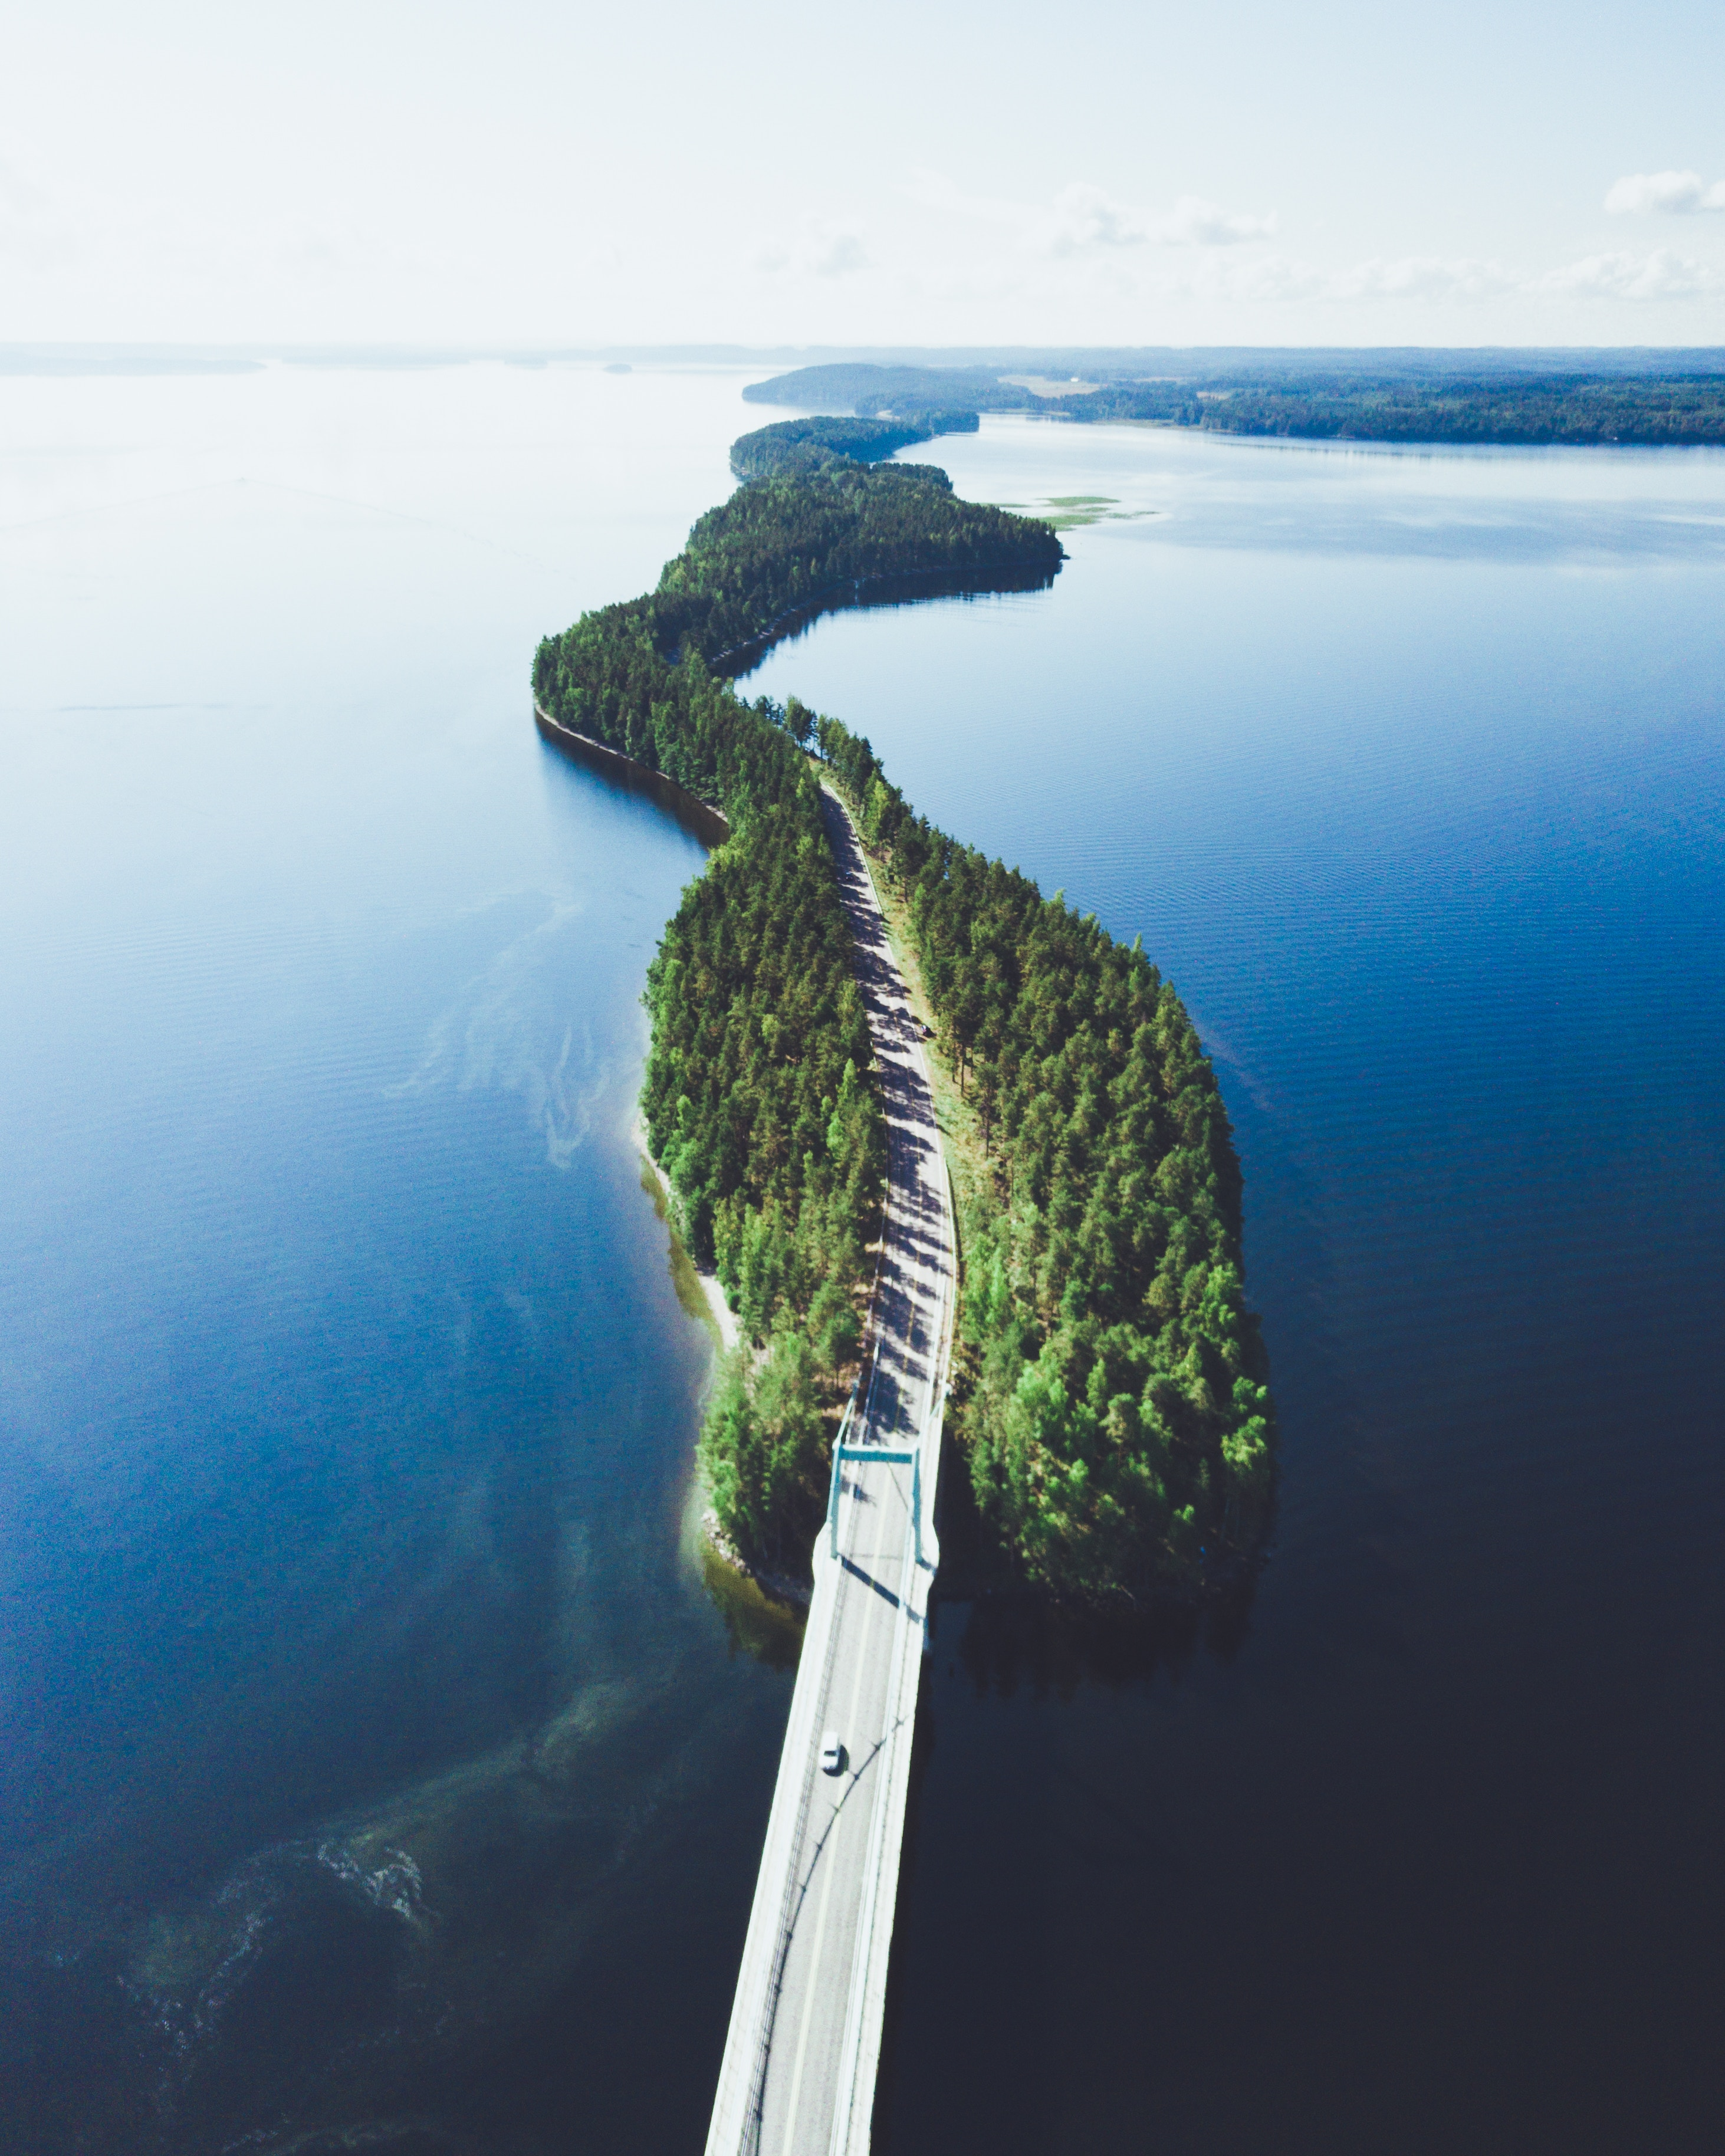 Image of a long road in Finland